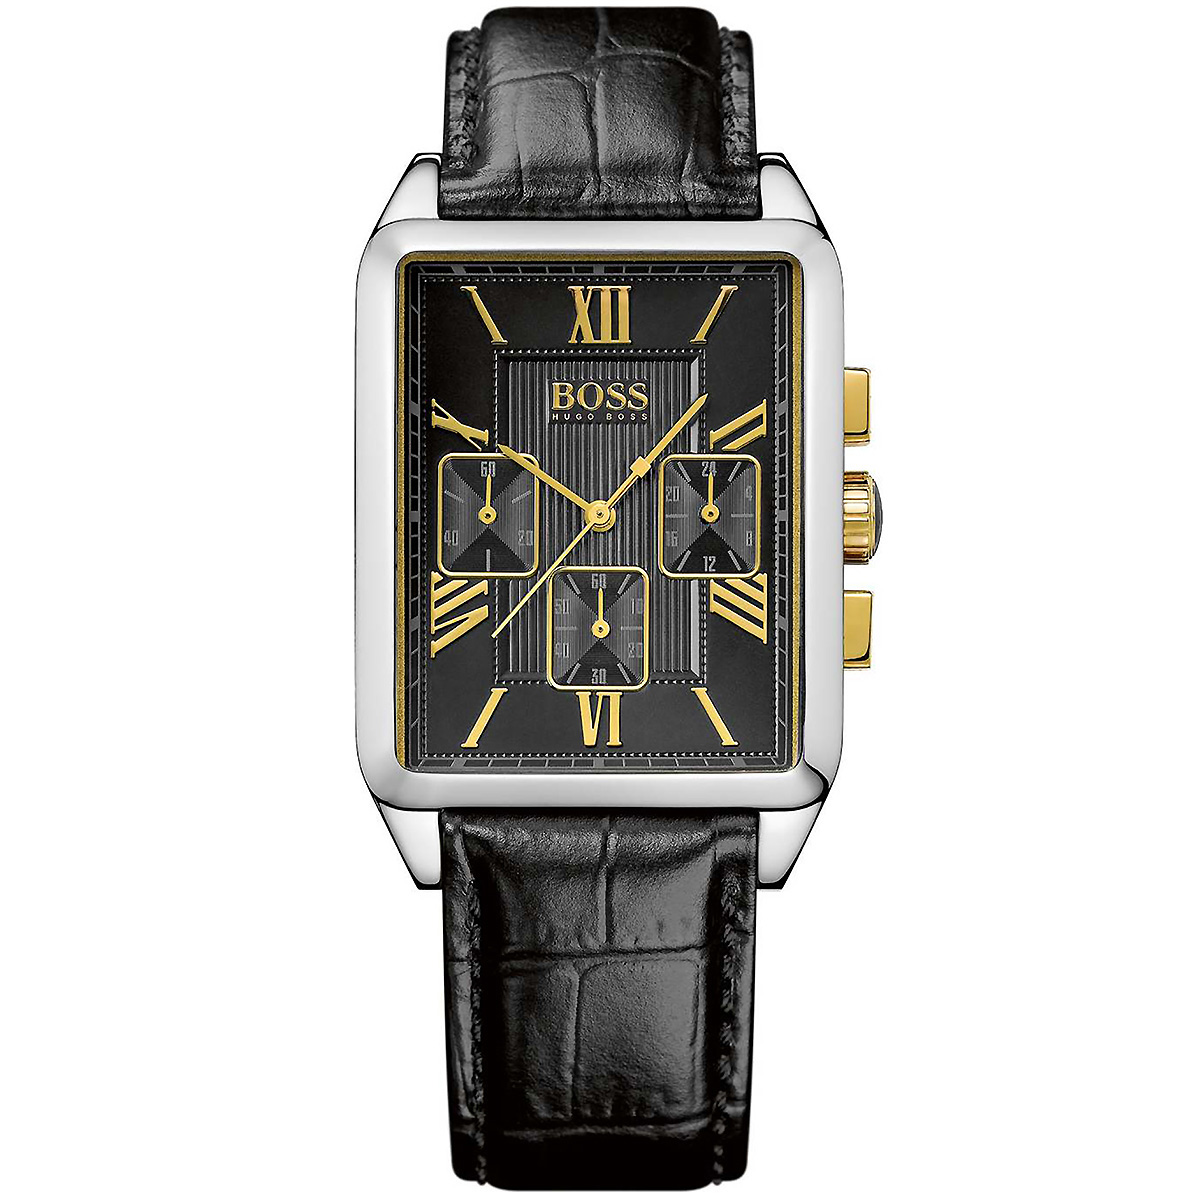 hugo boss uhr 1512726 herrenuhr schwarz silber gold leder. Black Bedroom Furniture Sets. Home Design Ideas